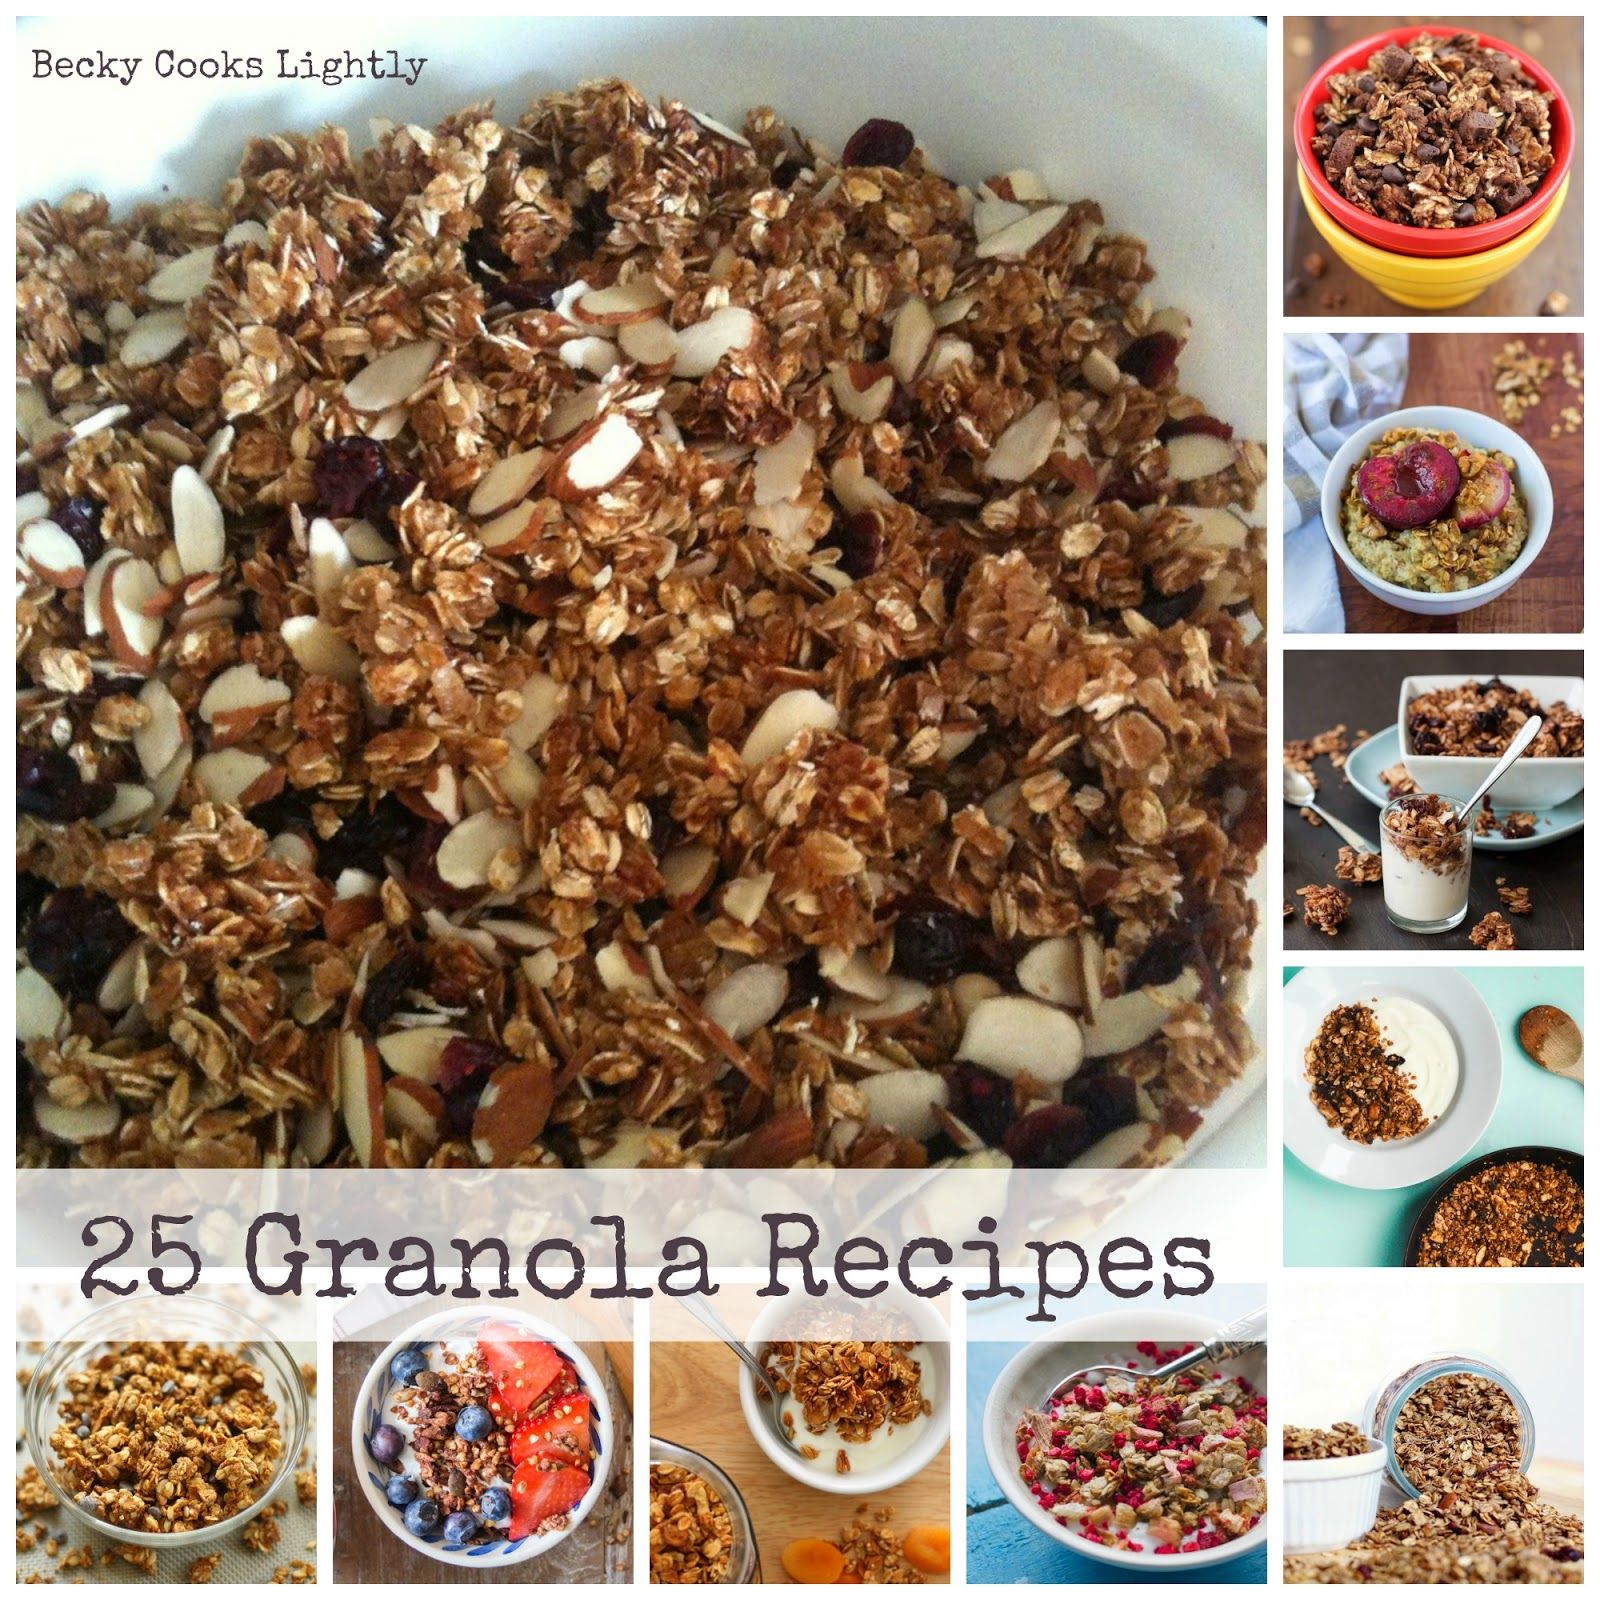 25 Granola Recipes {For A Healthy Breakfast} | Becky Cooks Lightly